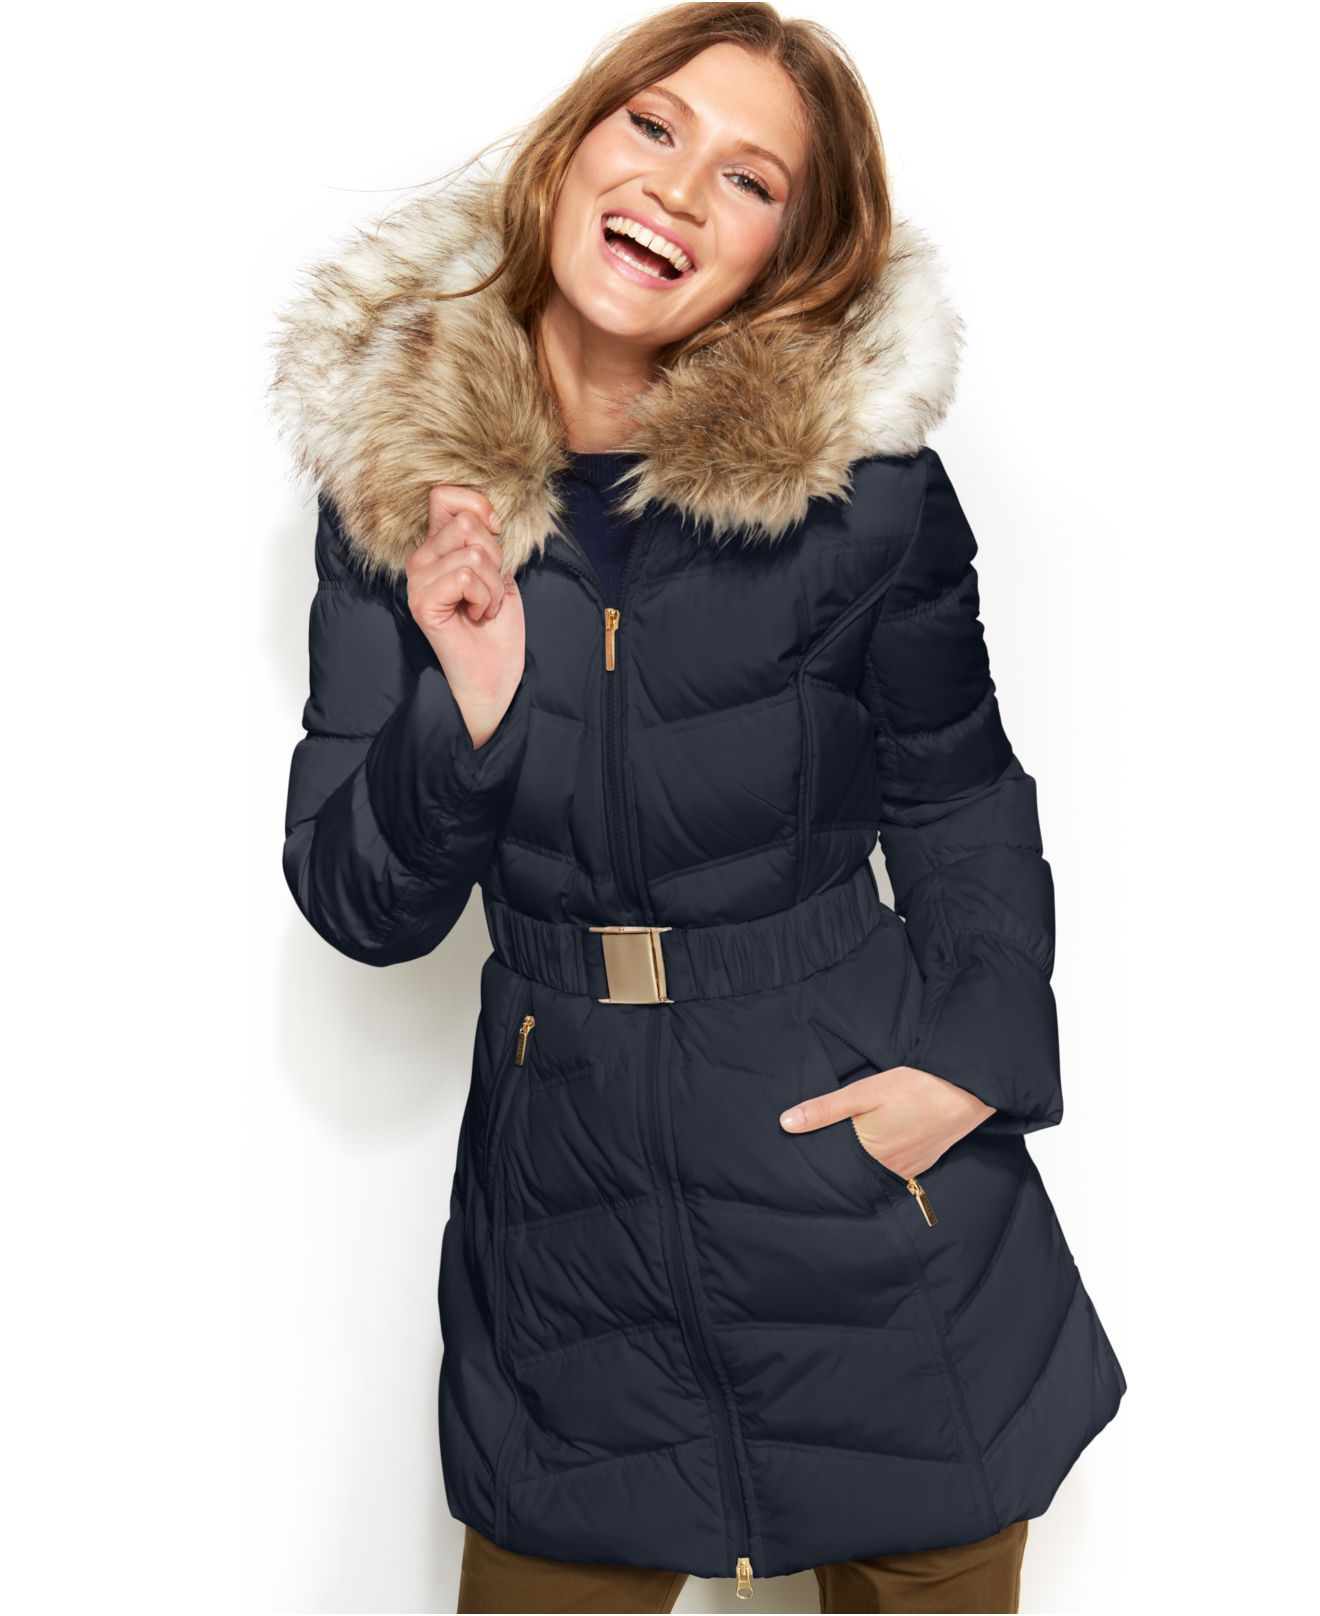 Puffer Jacket With Fur Hood | Outdoor Jacket